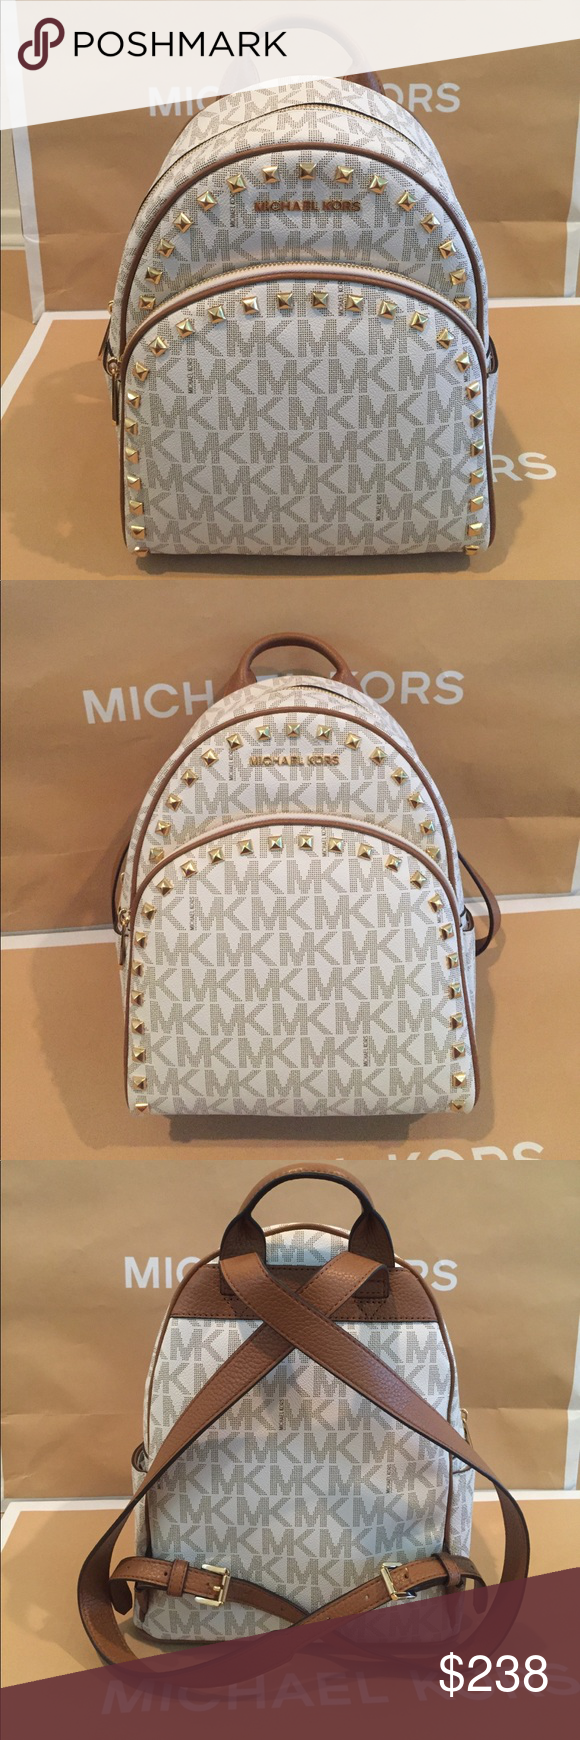 e8518b54f5d1 🌹Michael Kors Abbey Medium Backpack🌹💐 100% Authentic Mihael Kors Abbey  Medium Frame out Stud Backpack Vanilla/Acorn🌴 Michael Kors Bags Backpacks